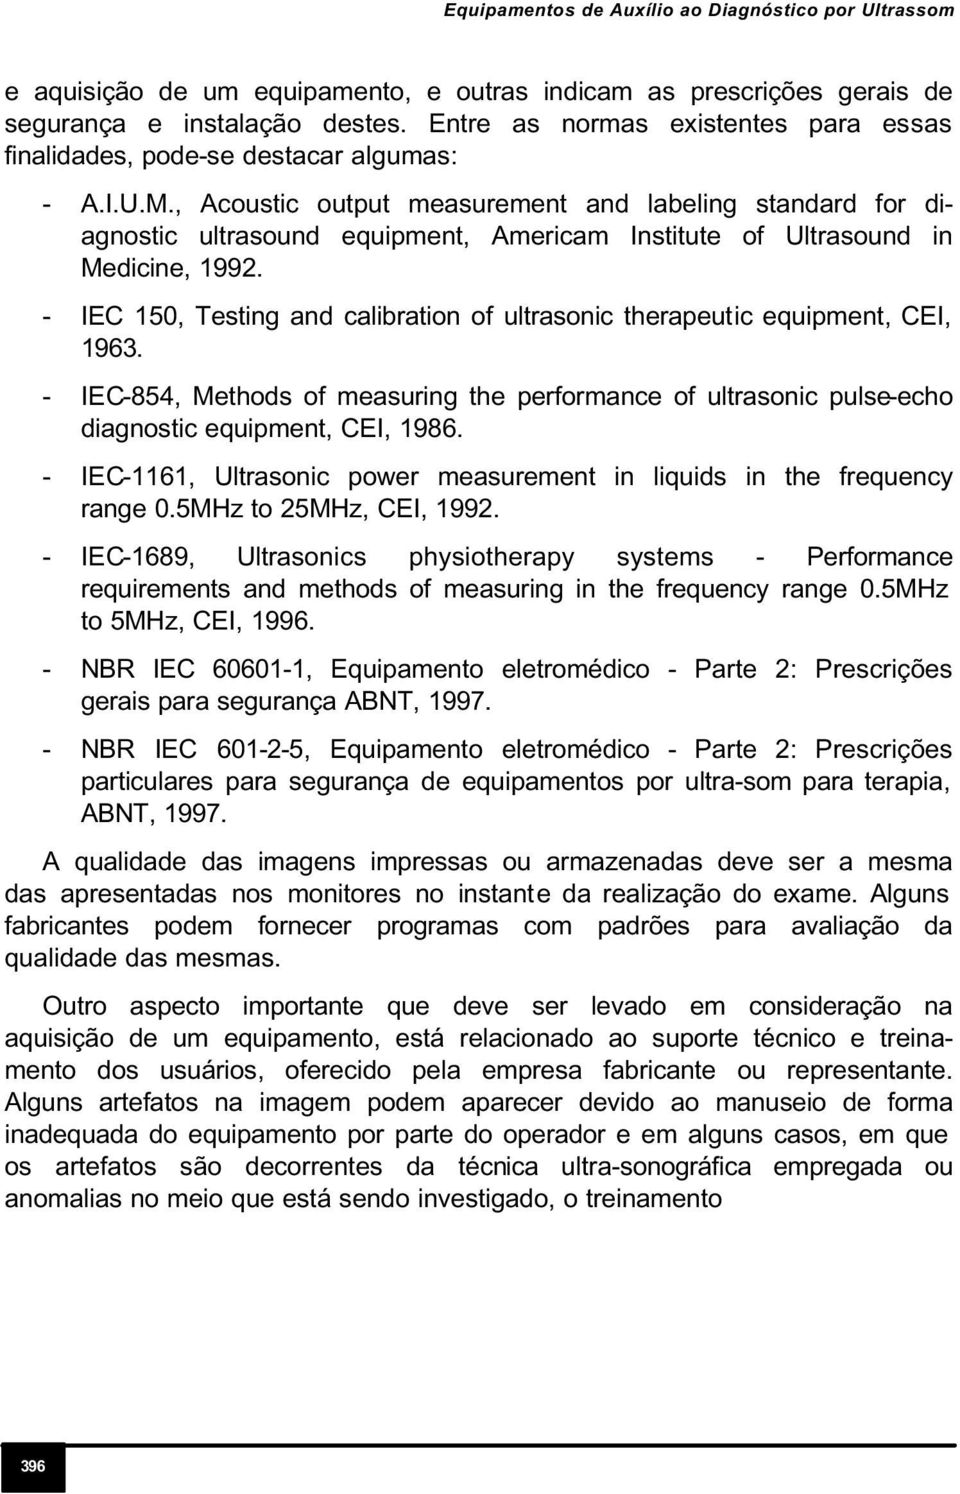 , Acoustic output measurement and labeling standard for diagnostic ultrasound equipment, Americam Institute of Ultrasound in Medicine, 1992.